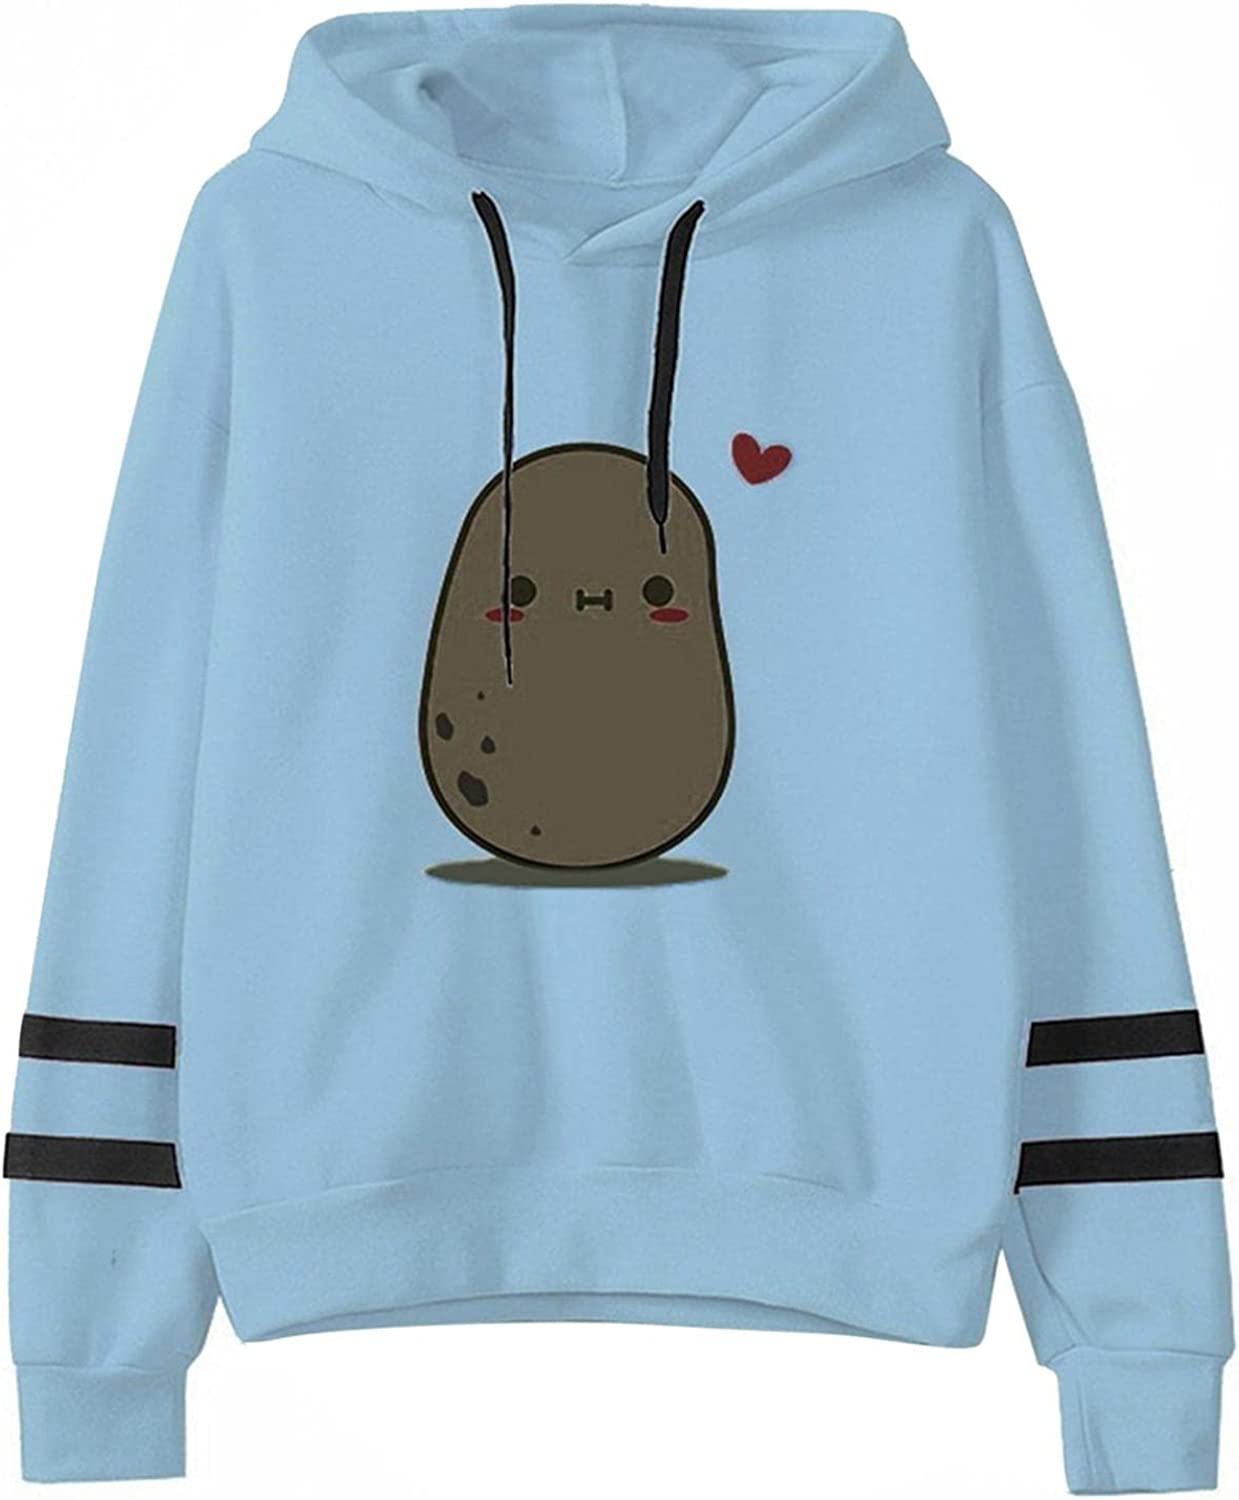 POLLYANNA KEONG Sweatshirts for Women Hoodie,Cute Frog Graphic with Pocket Loose Long Sleeve Casual Pullover Tops Blouses